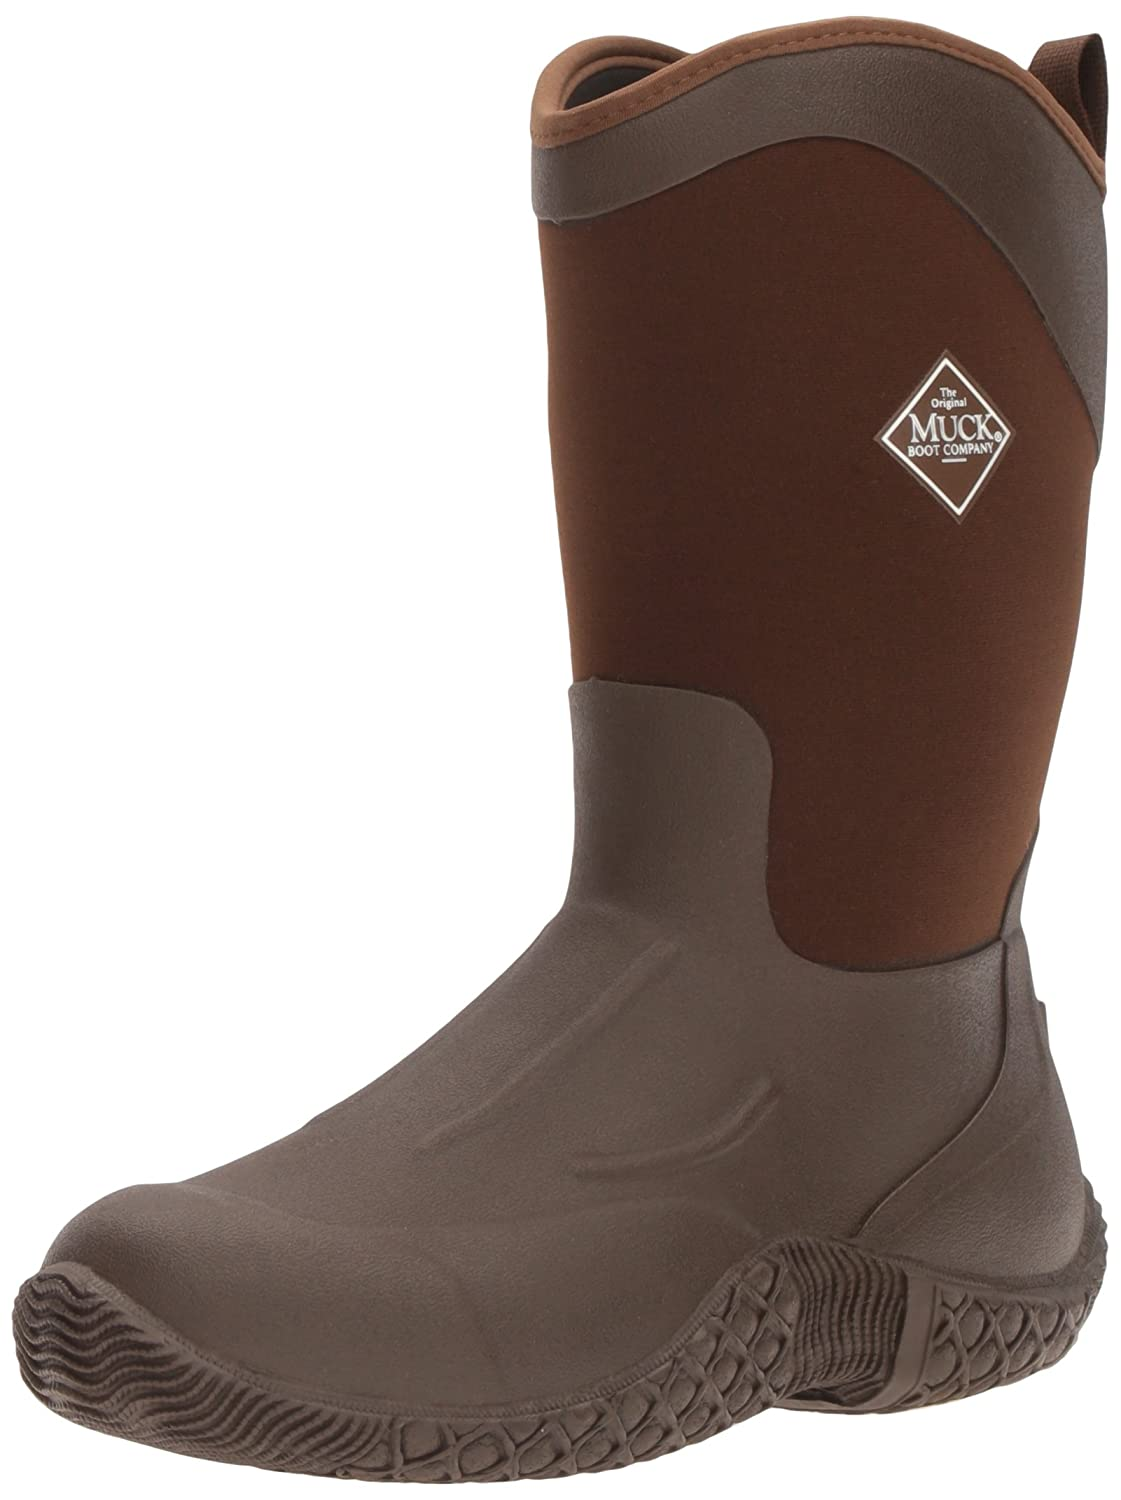 Muck Boot Women's Tack II Mid Snow B00TSRB7WG 11 B(M) US|Brown